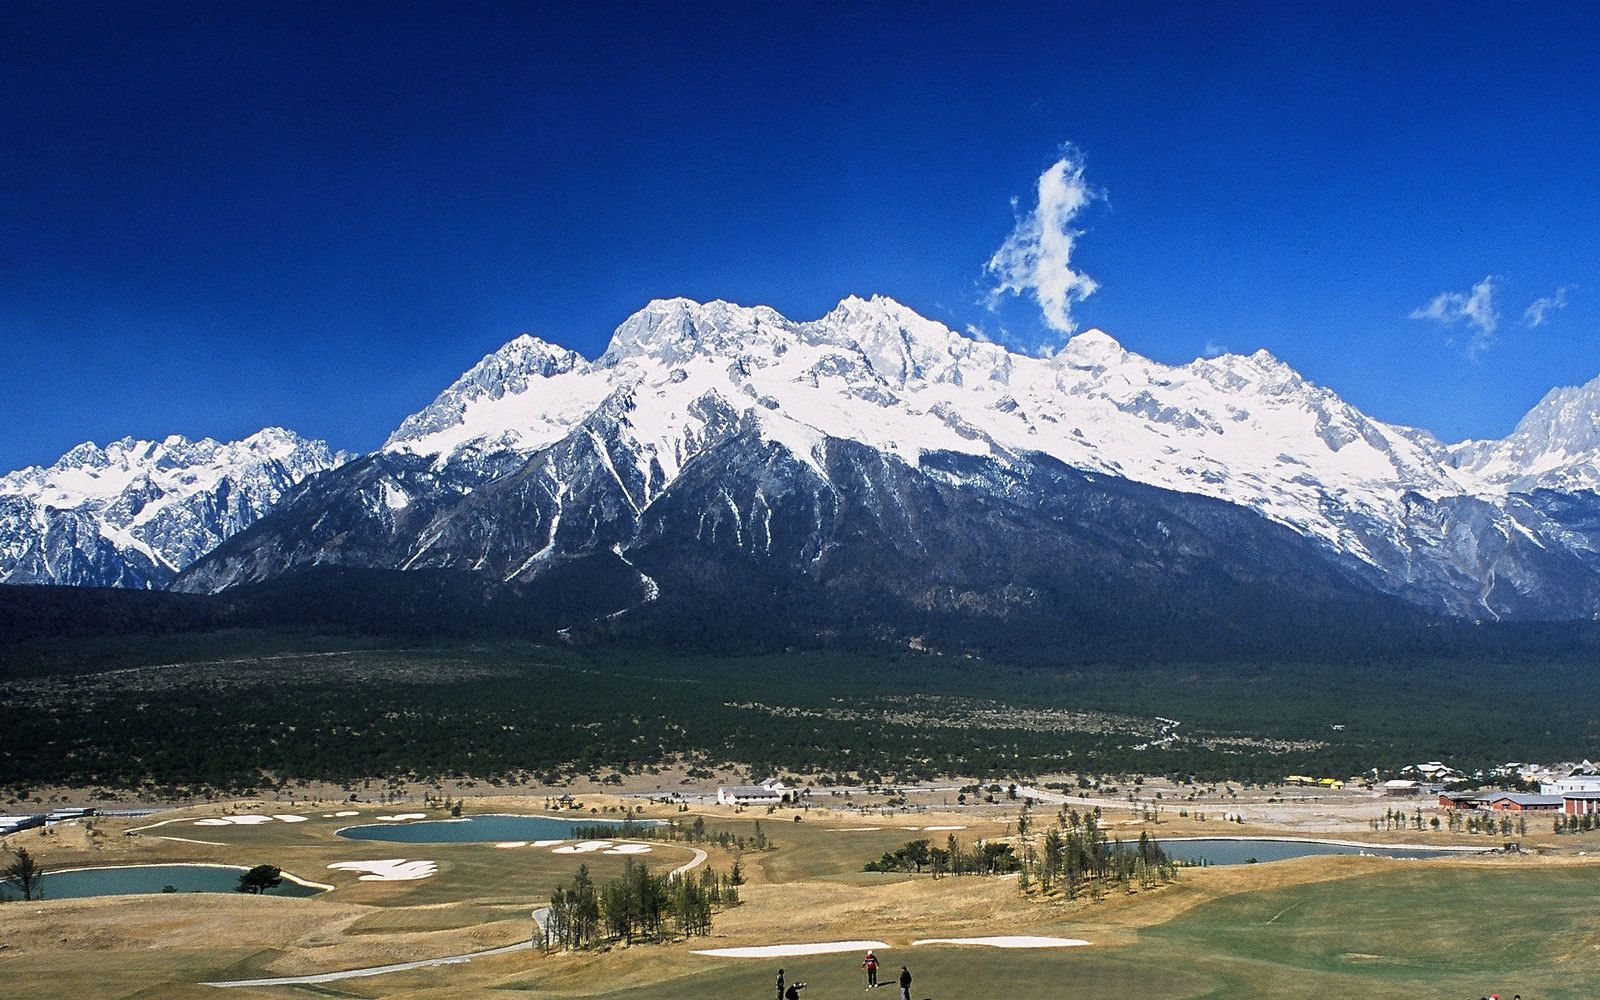 Lijiang Highlight Trip to Snow Mountain and Local Village